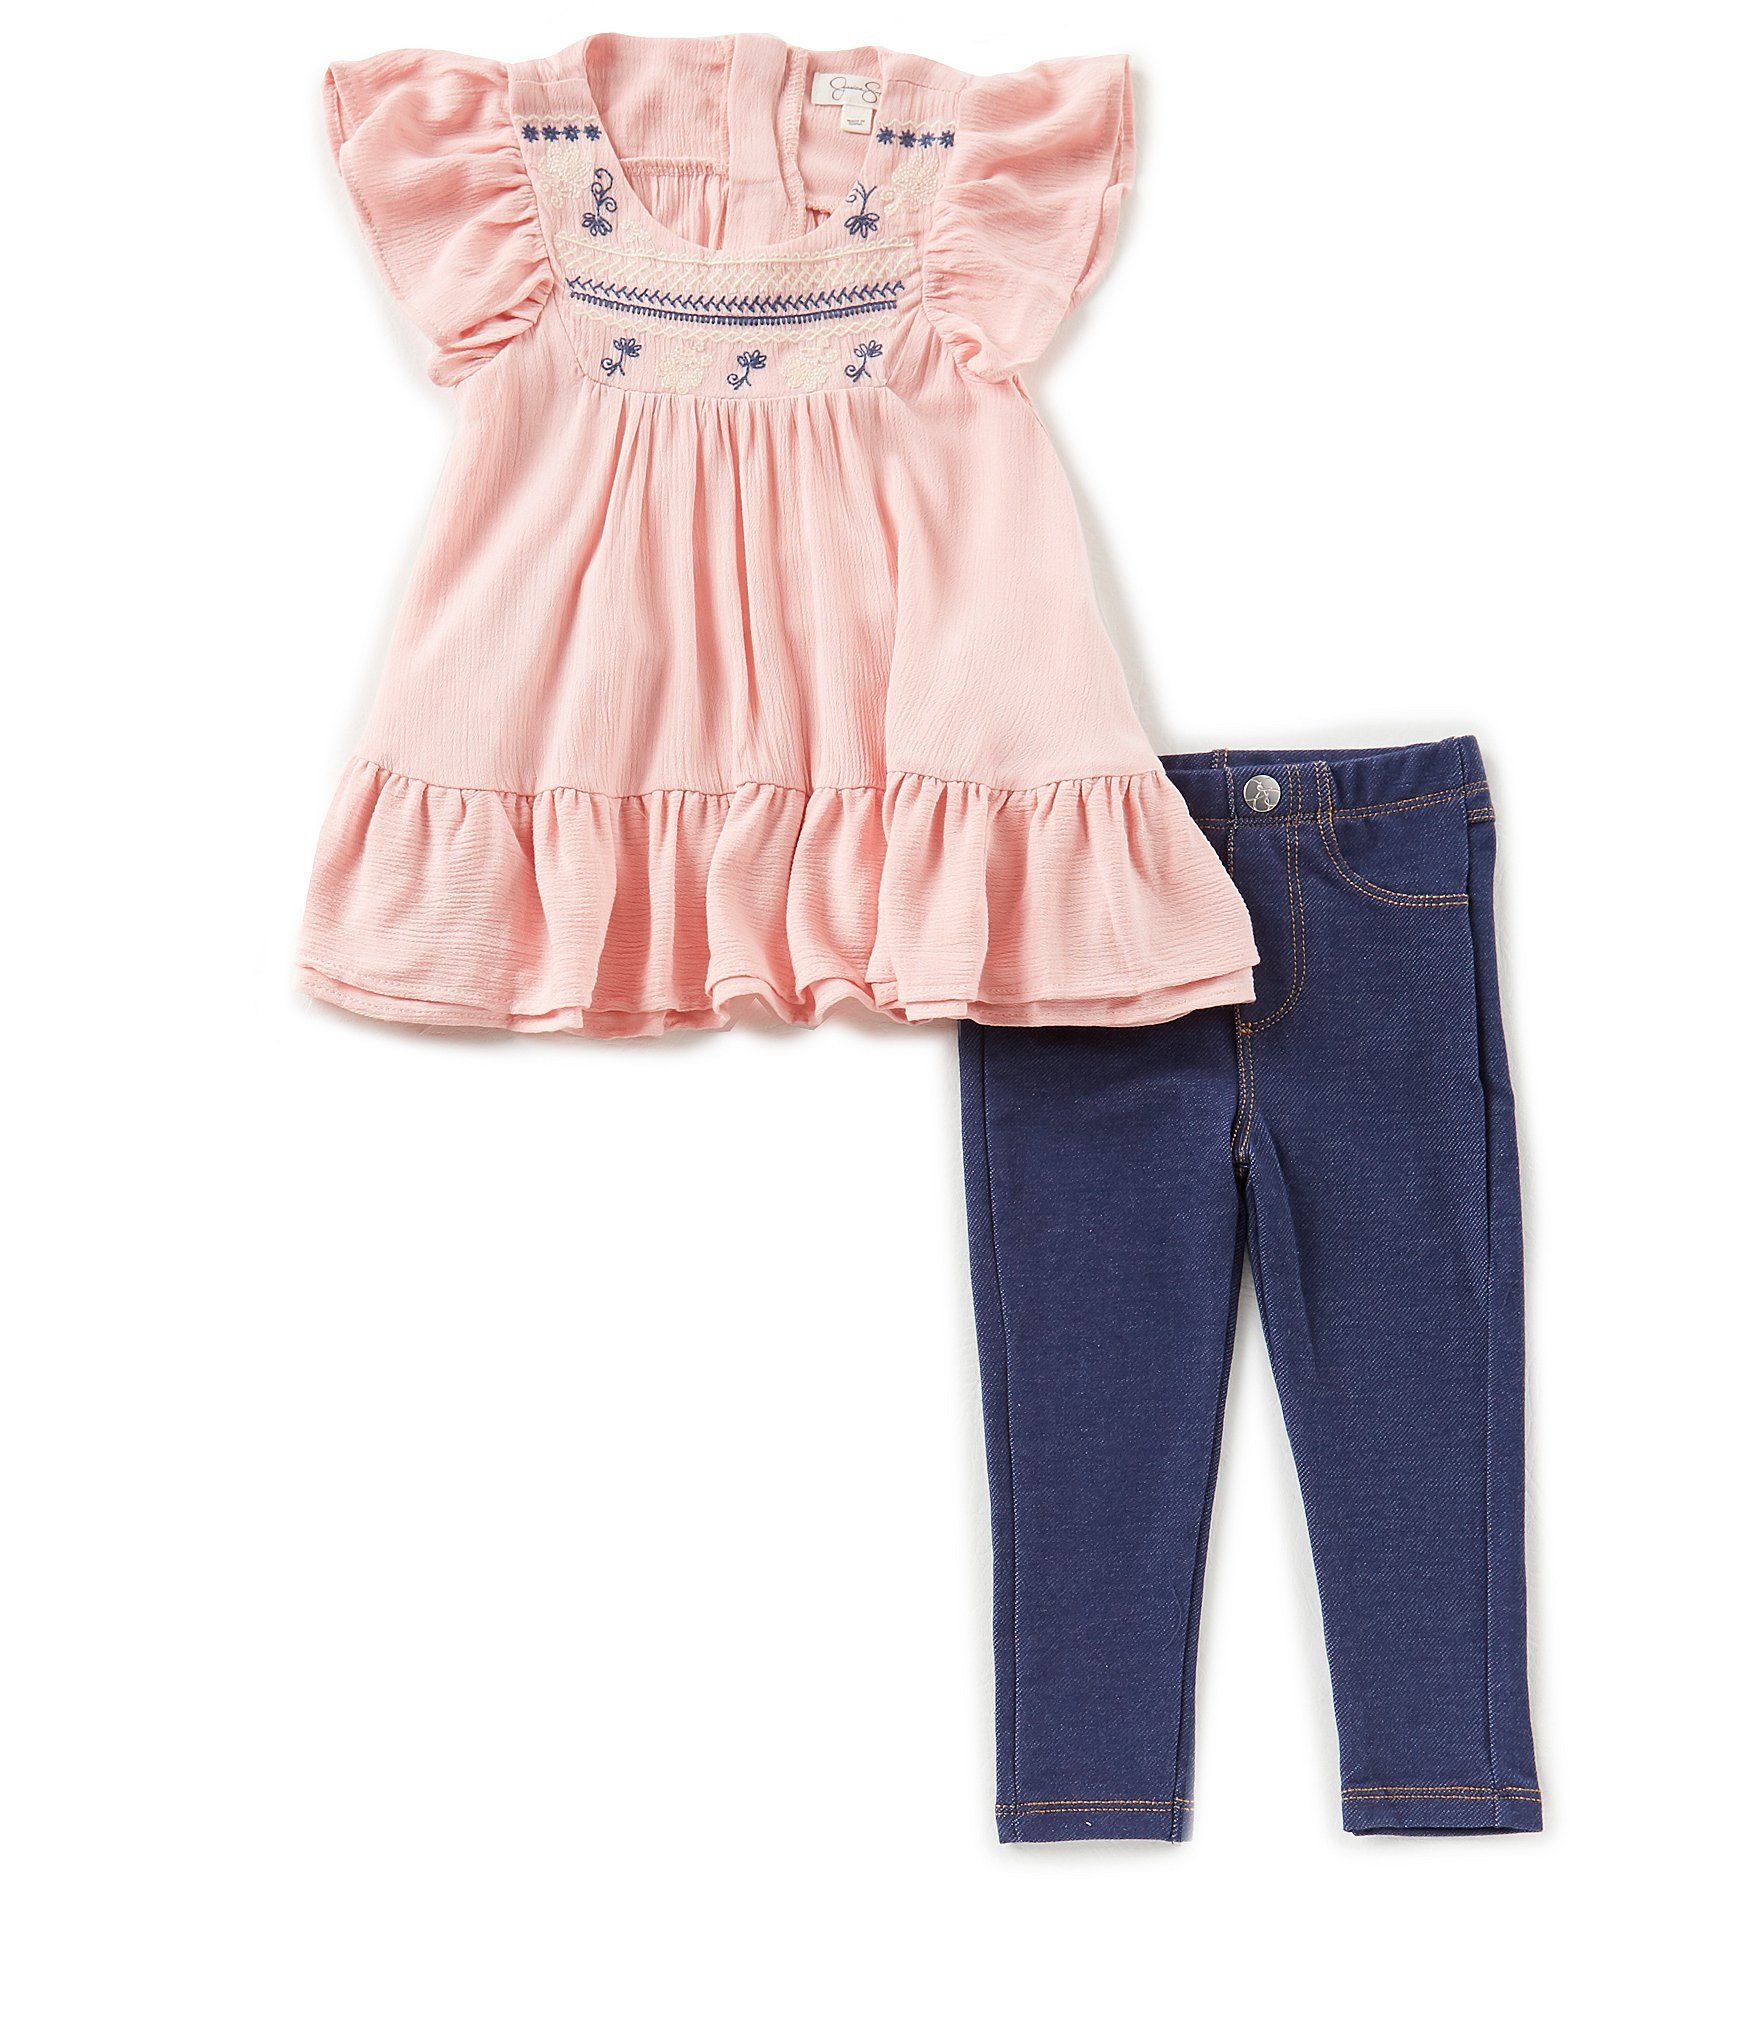 Jessica Simpson Baby Girls 12-24 Months Embroidered Ruffle-Hem Top ...